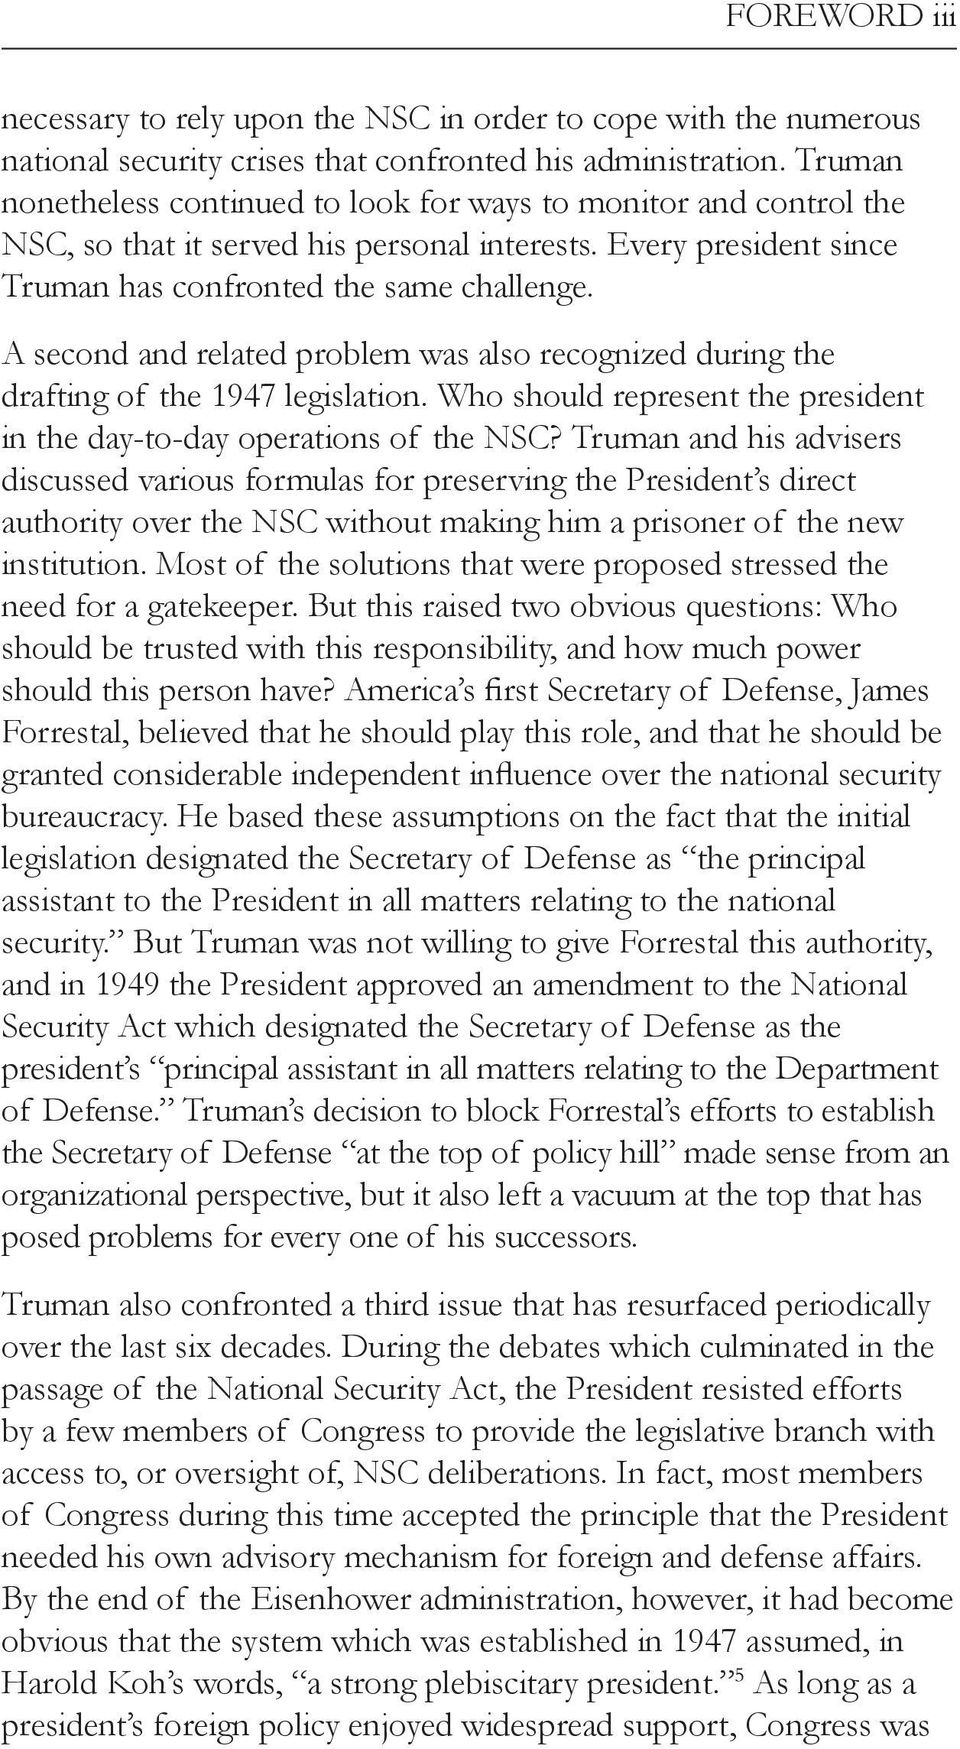 A second and related problem was also recognized during the drafting of the 1947 legislation. Who should represent the president in the day-to-day operations of the NSC?